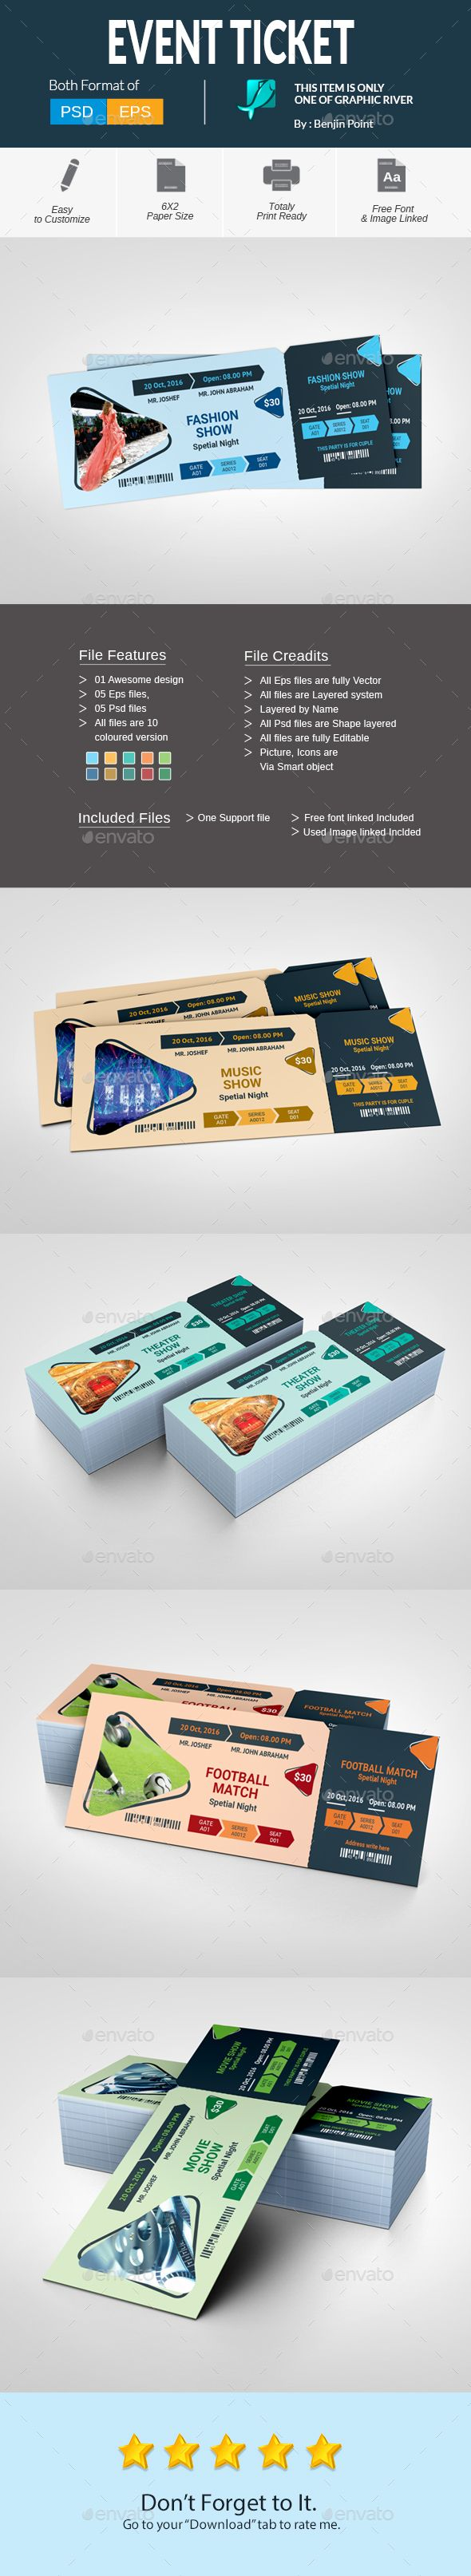 Event Ticket  — PSD Template #ticket #event • Download ➝ https://graphicriver.net/item/event-ticket/18435254?ref=pxcr